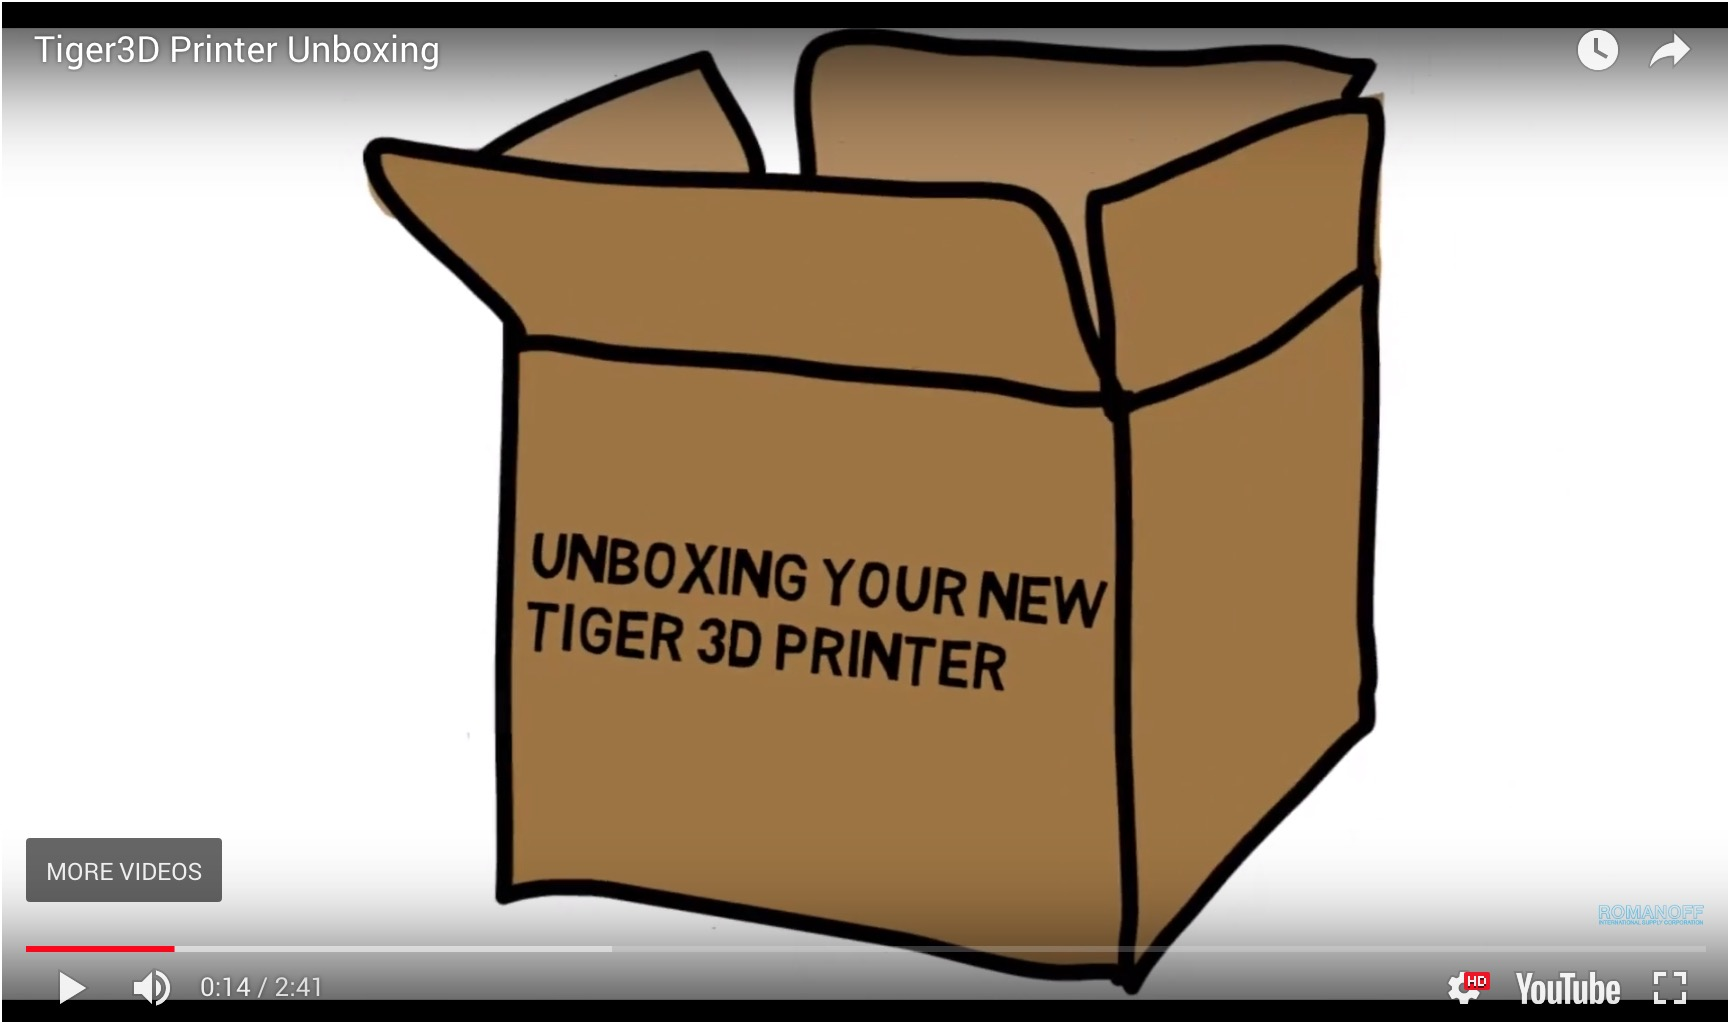 Tiger3D Printer Unboxing Video